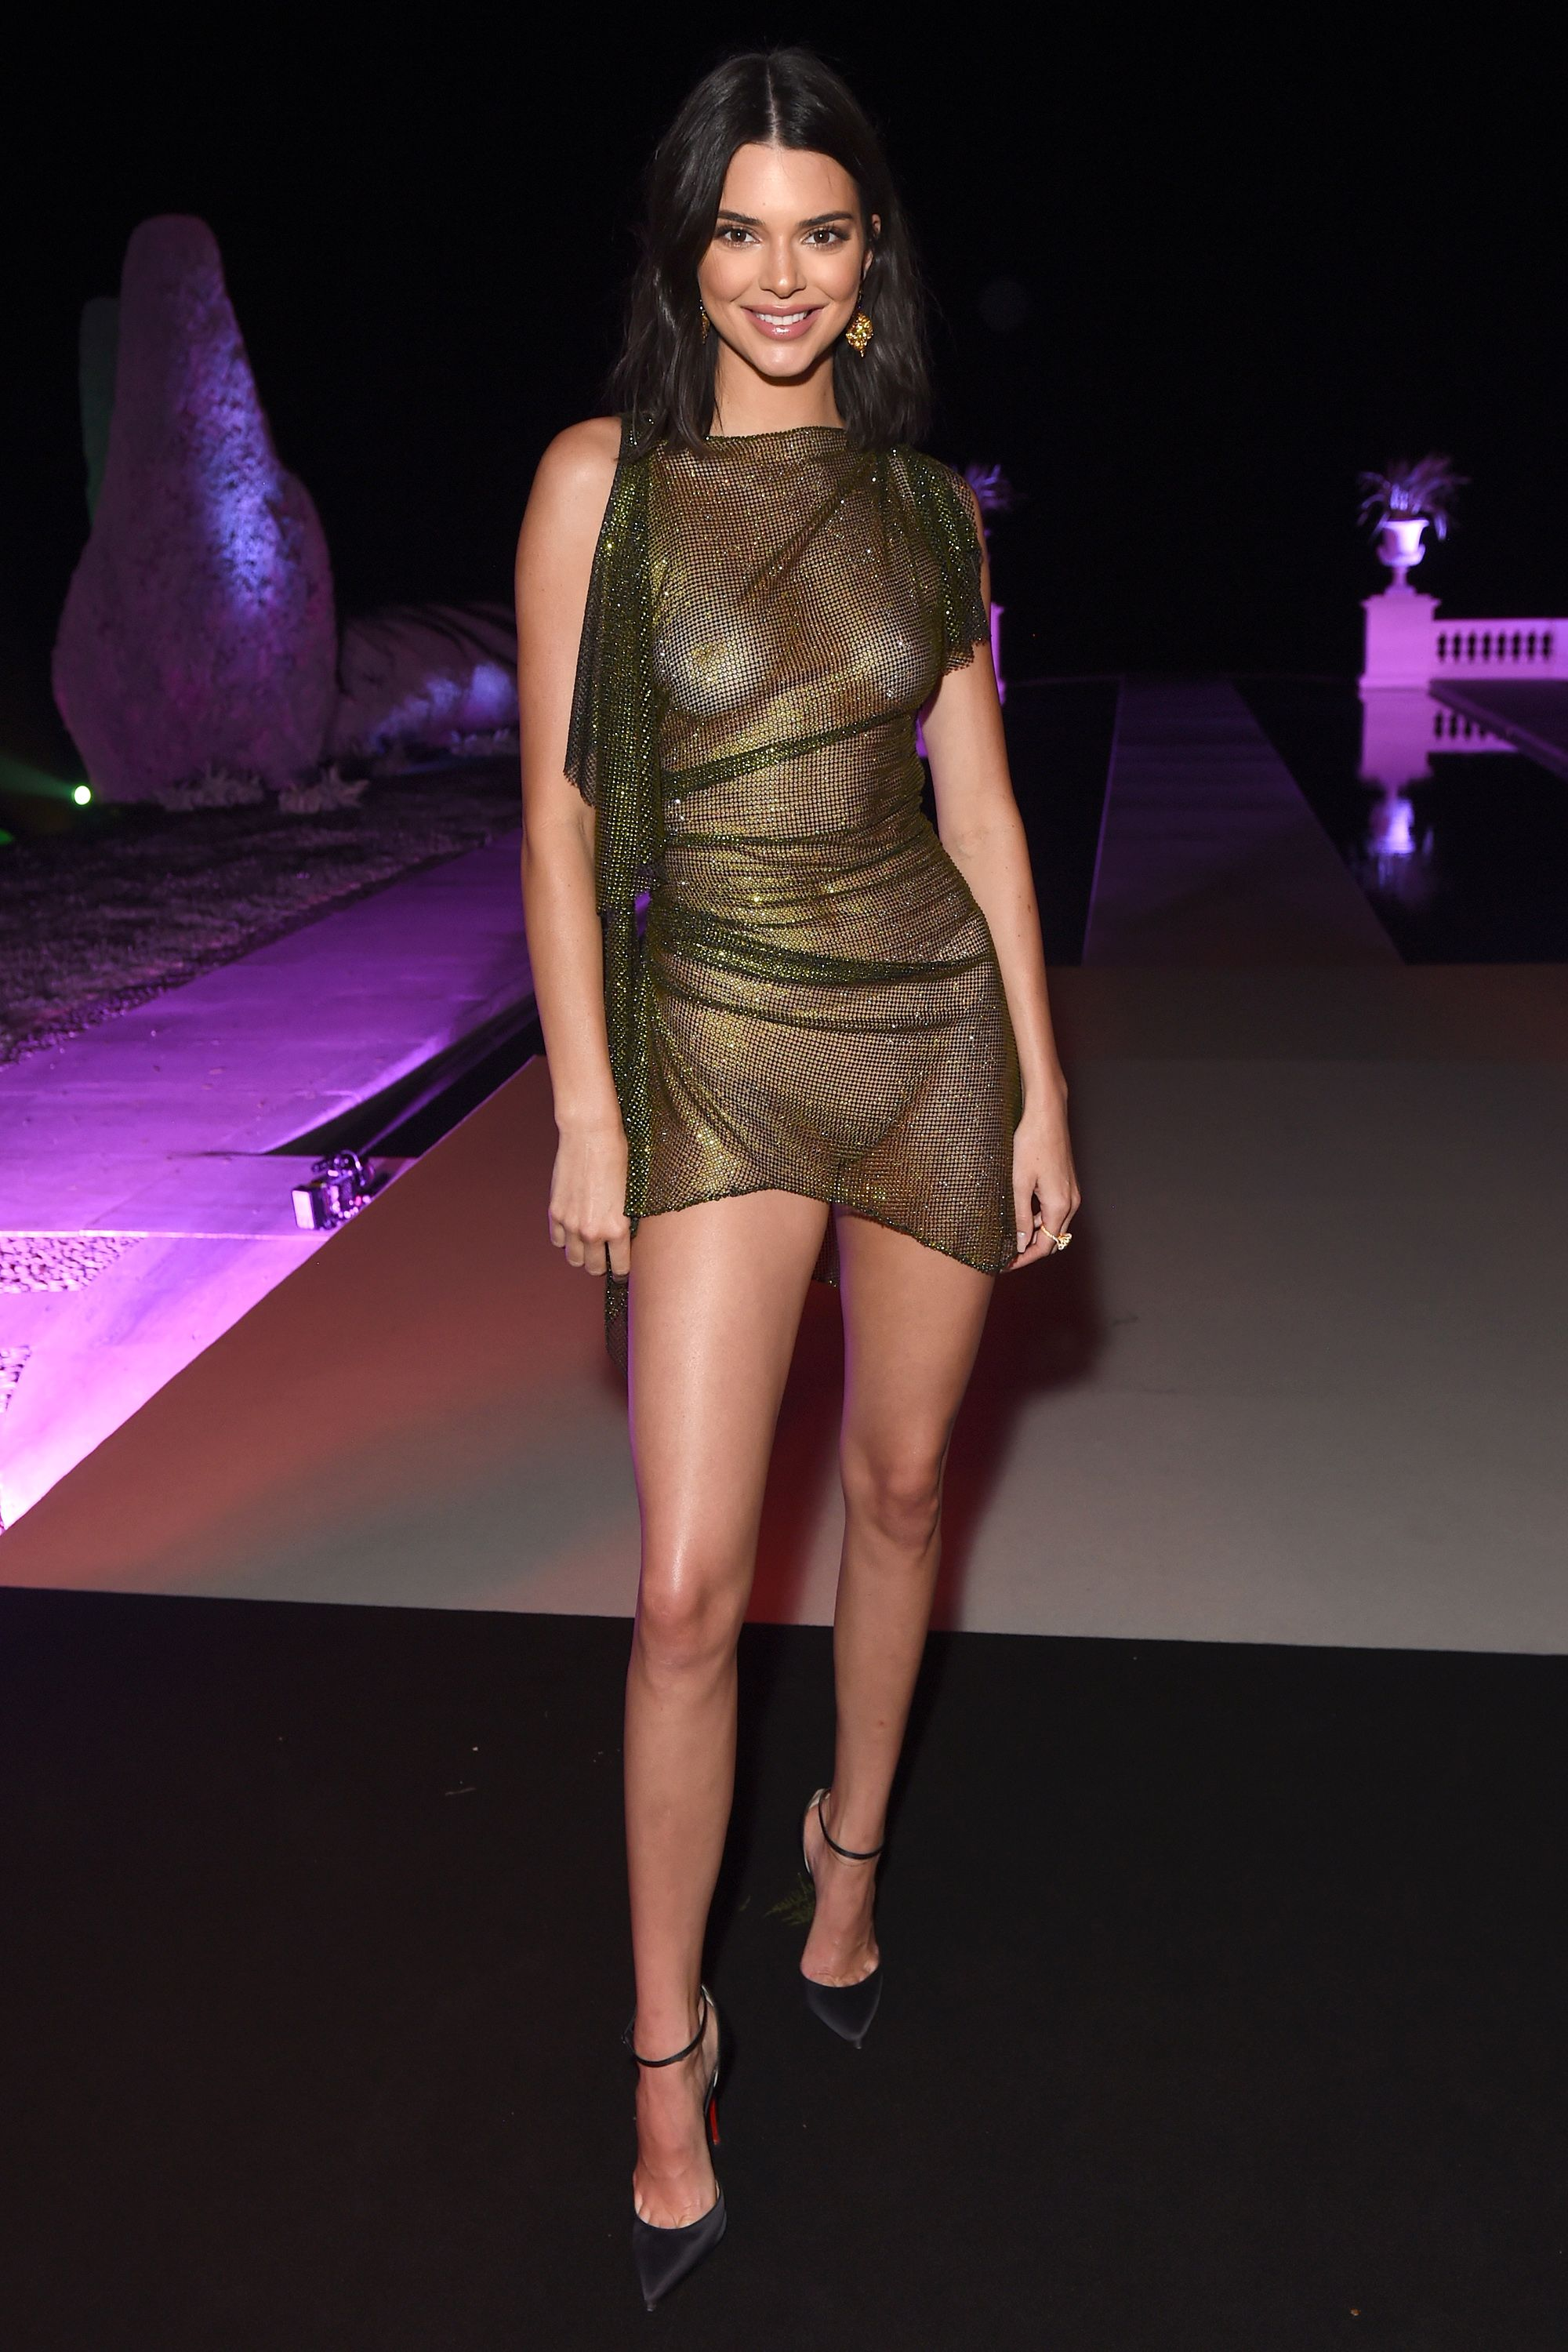 2deee75153 55 Sexiest Kardashian Jenner Outfits of All Time - Sexy Kardashian Jenner  Style